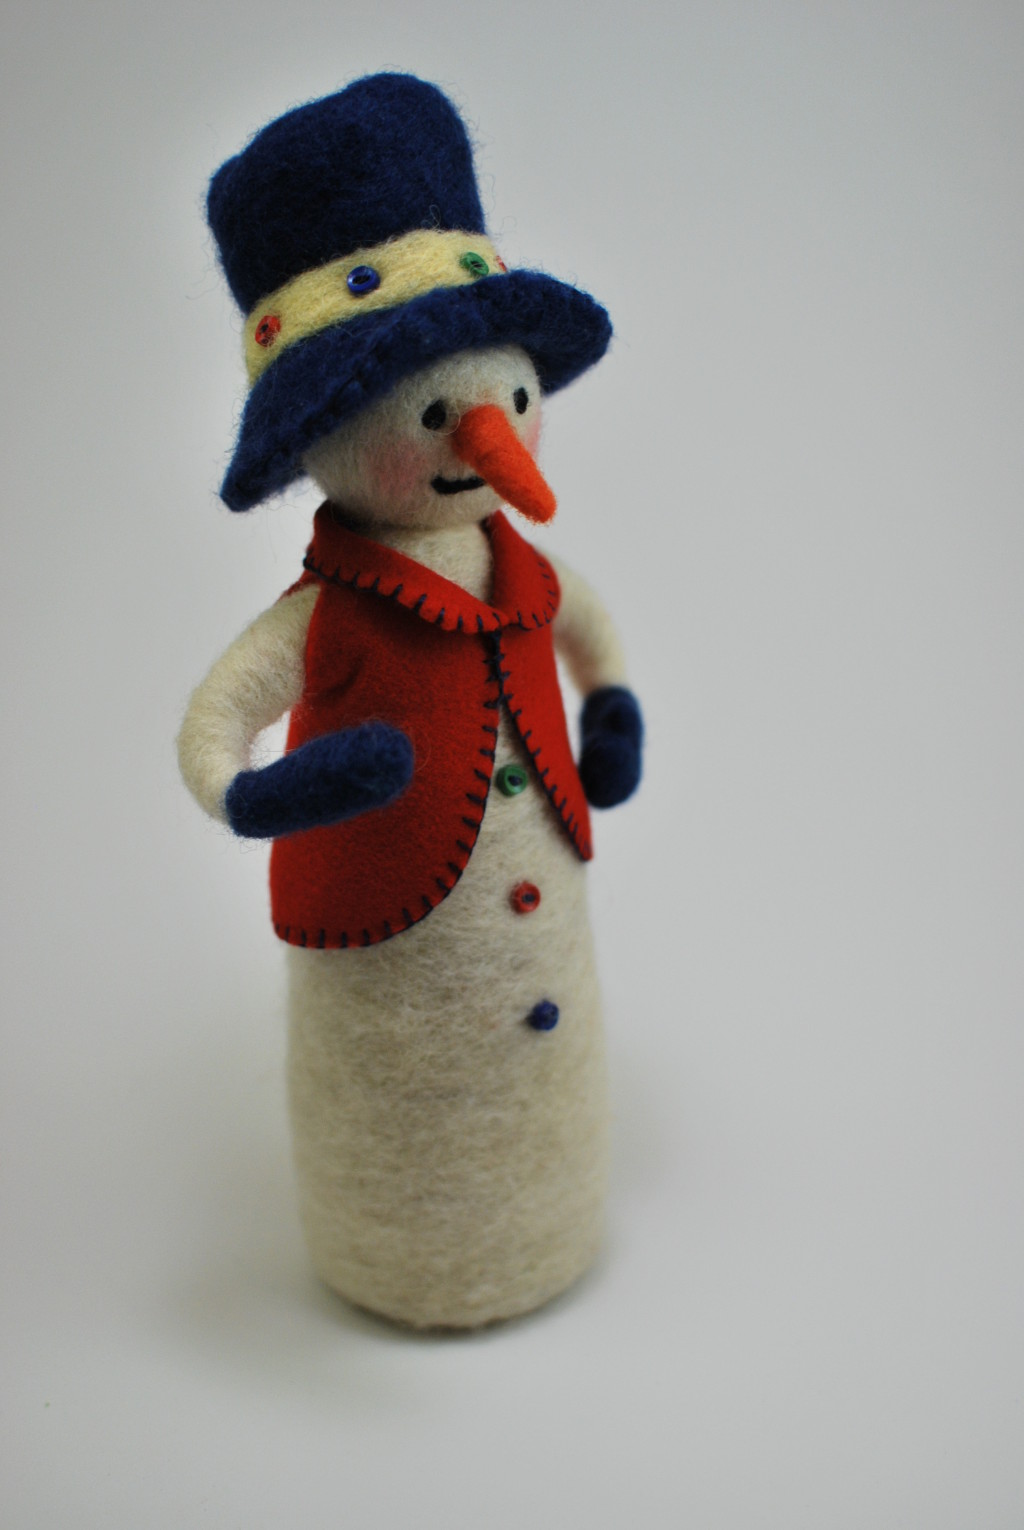 Another needle felted snowman